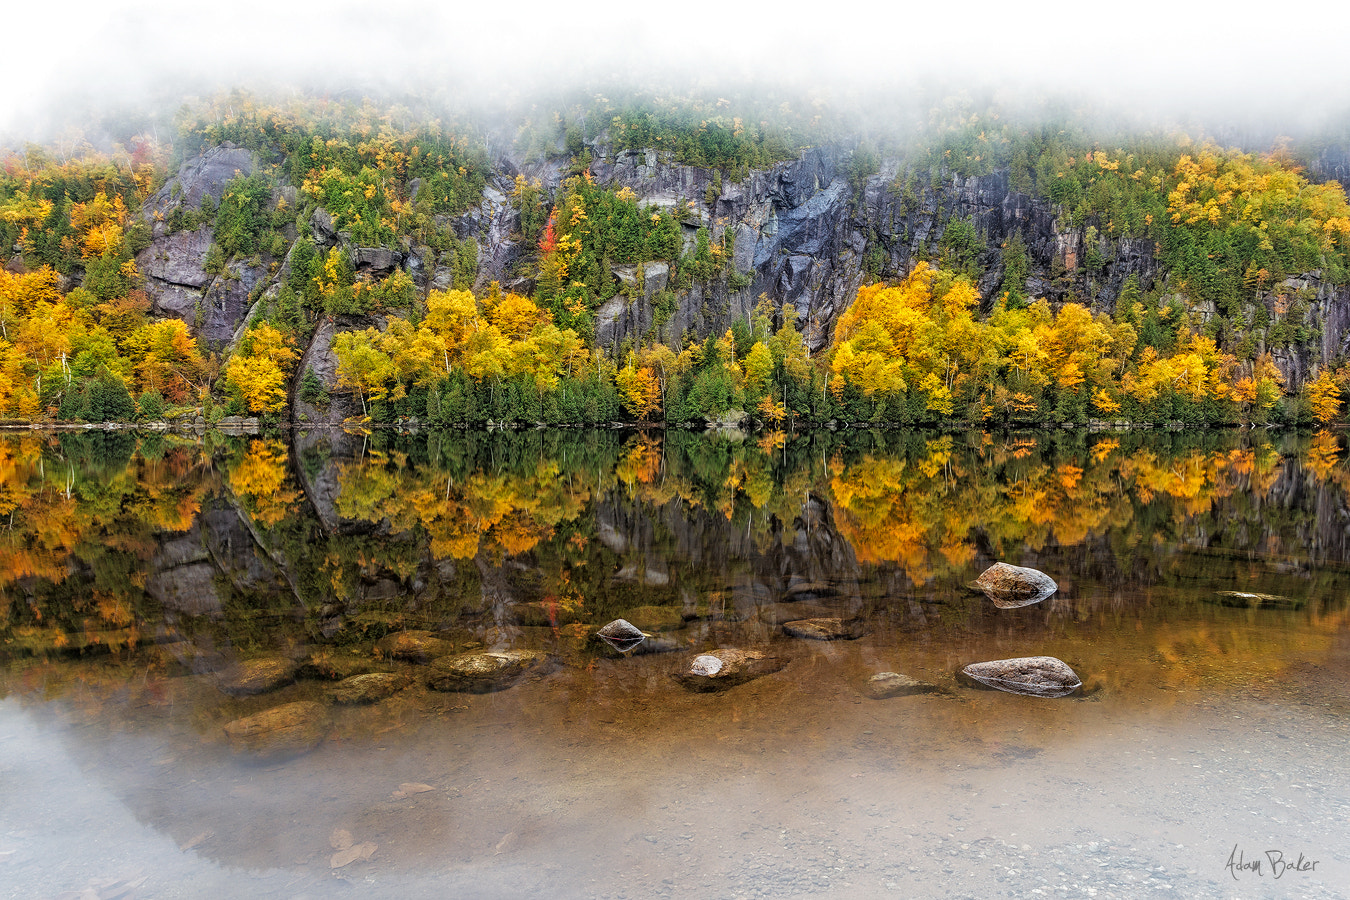 Photograph upon reflection by Adam Baker on 500px